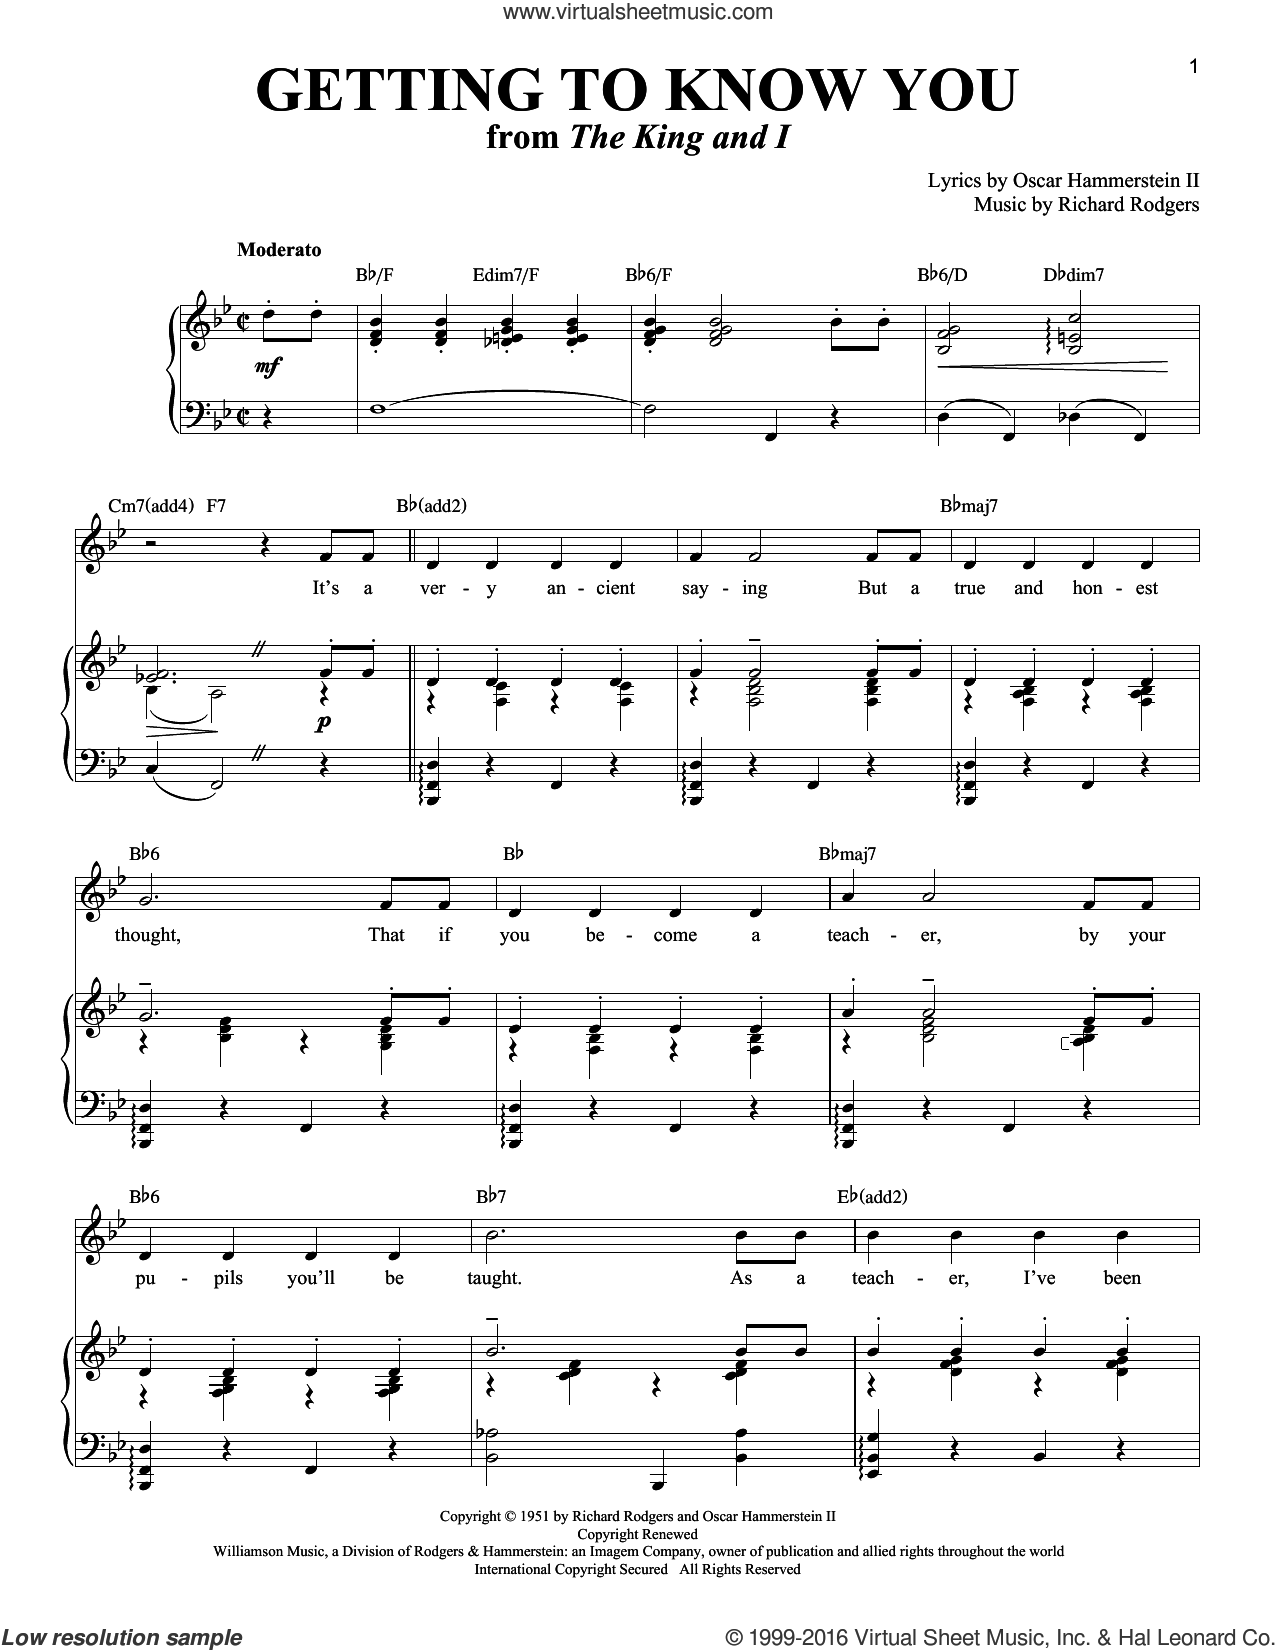 Getting To Know You sheet music for voice and piano by Richard Rodgers